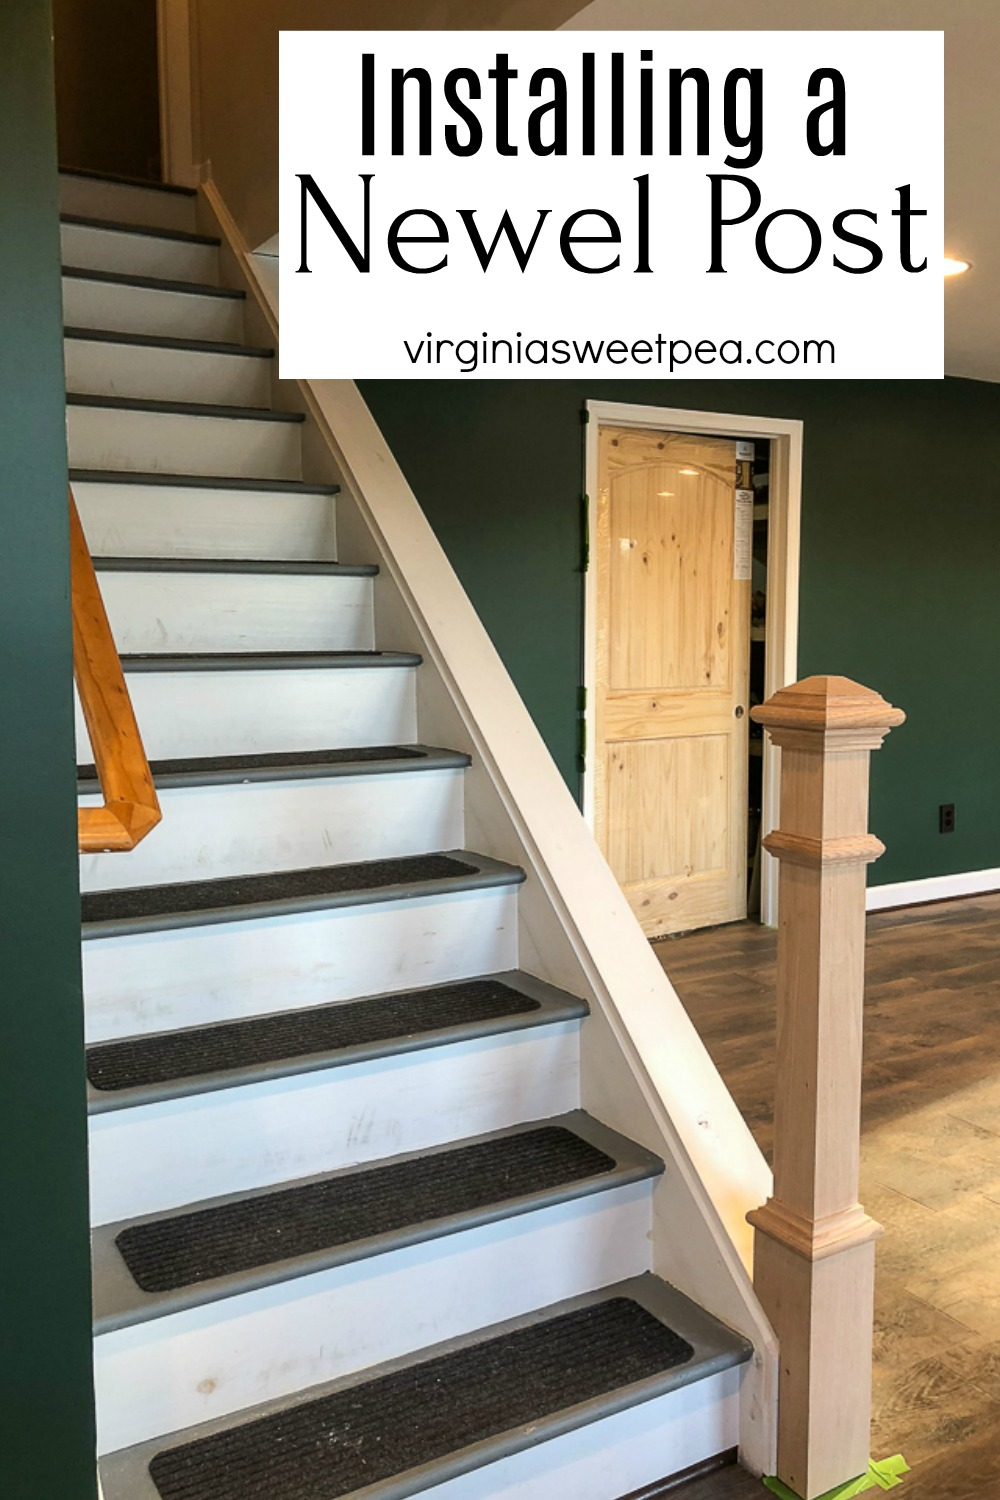 Installing a Newel Post - A newel post is added to the base of a set of basement stairs via @spaula